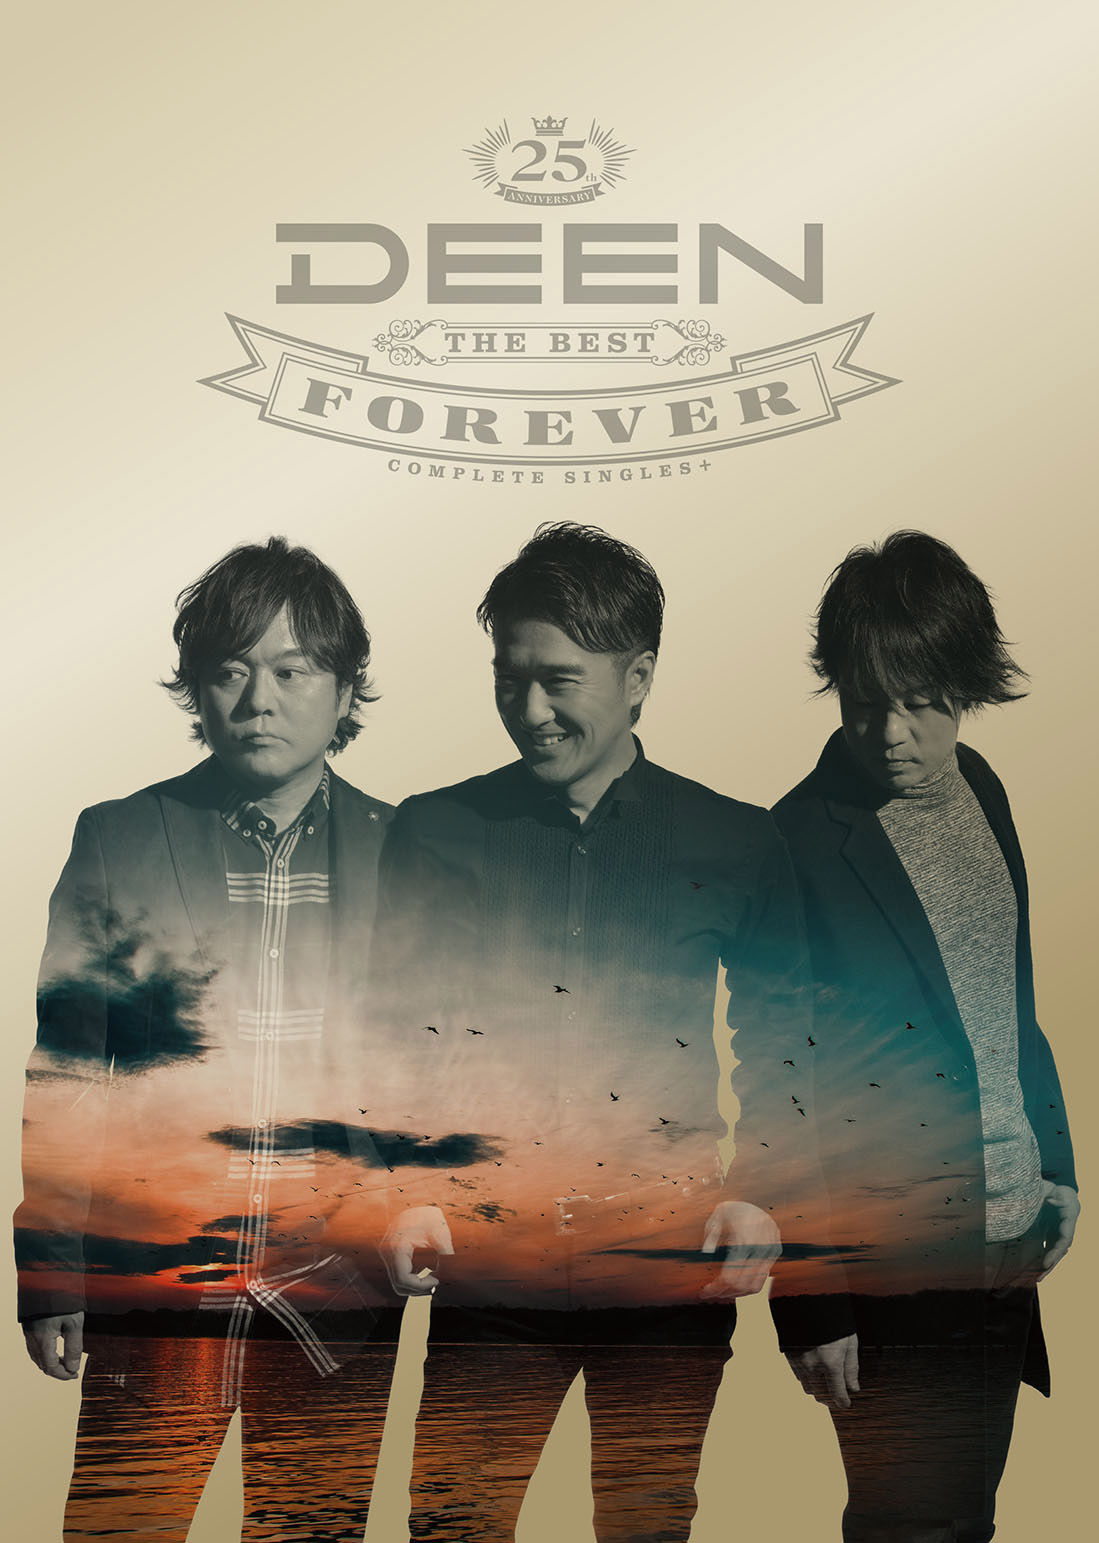 「DEEN The Best FOREVER ~Complete Singles+~」完全生産限定プレミアム盤